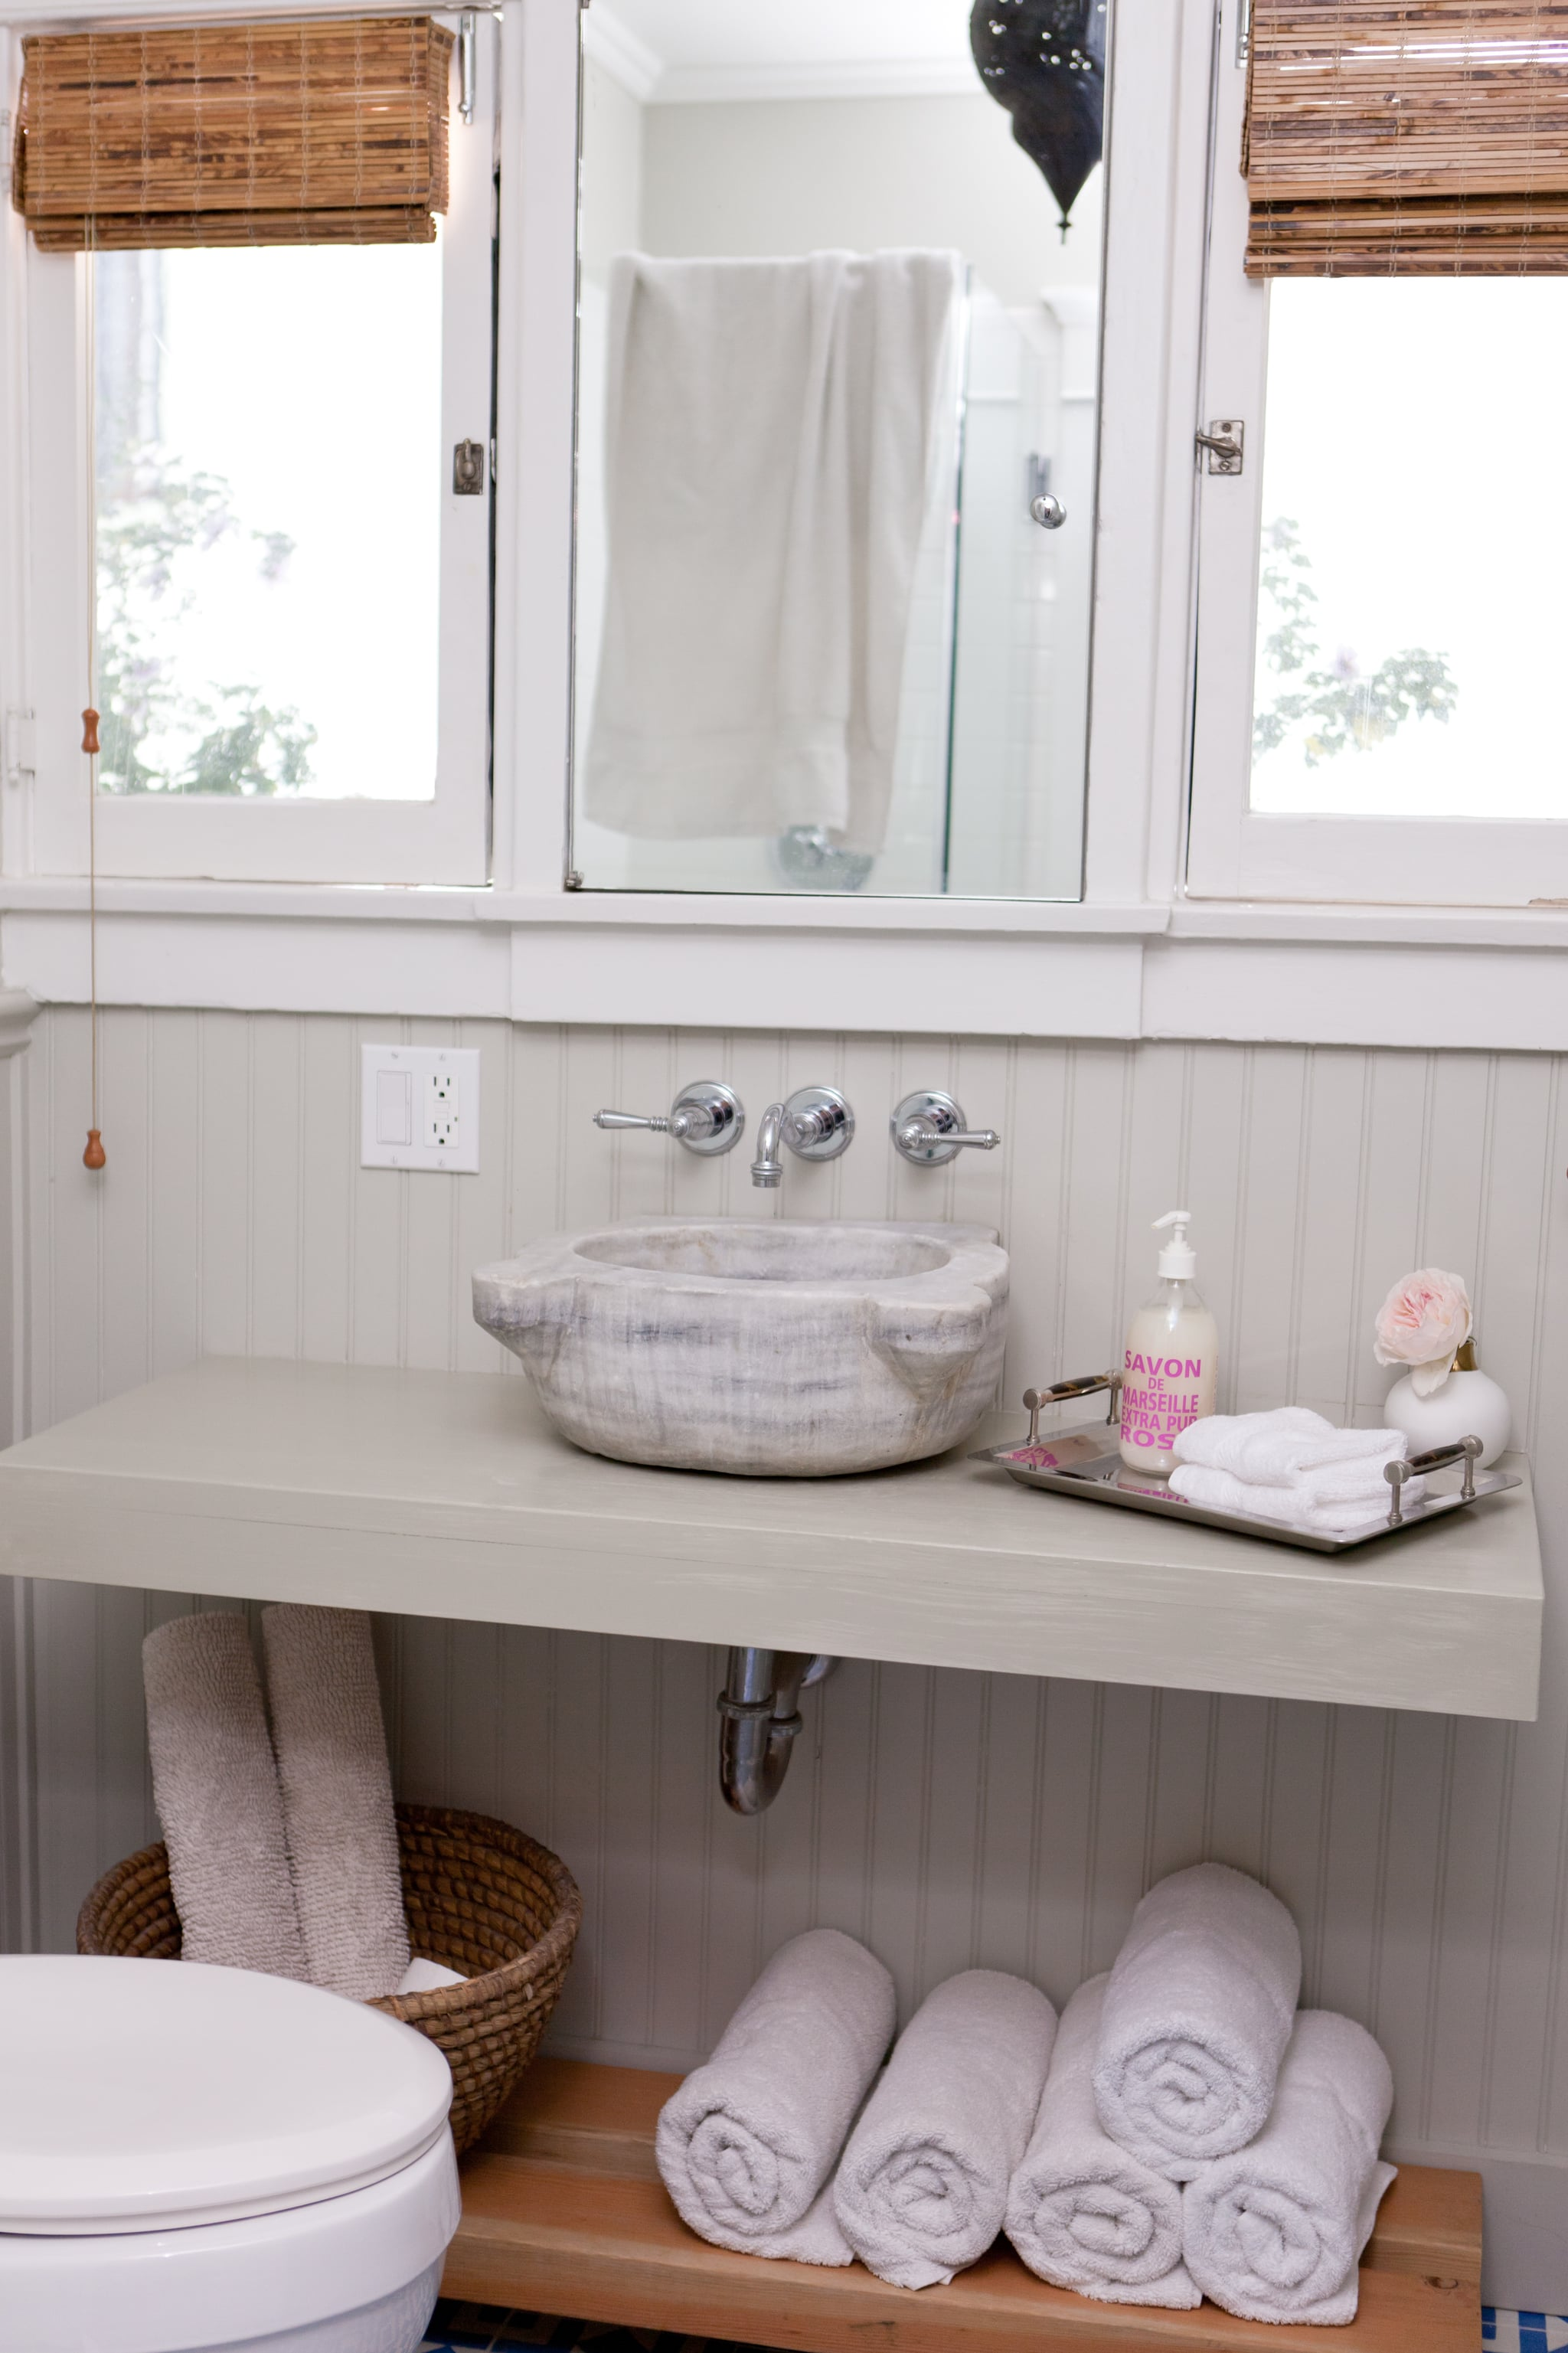 Lessons From a DIY Bathroom Reno | POPSUGAR Home Australia